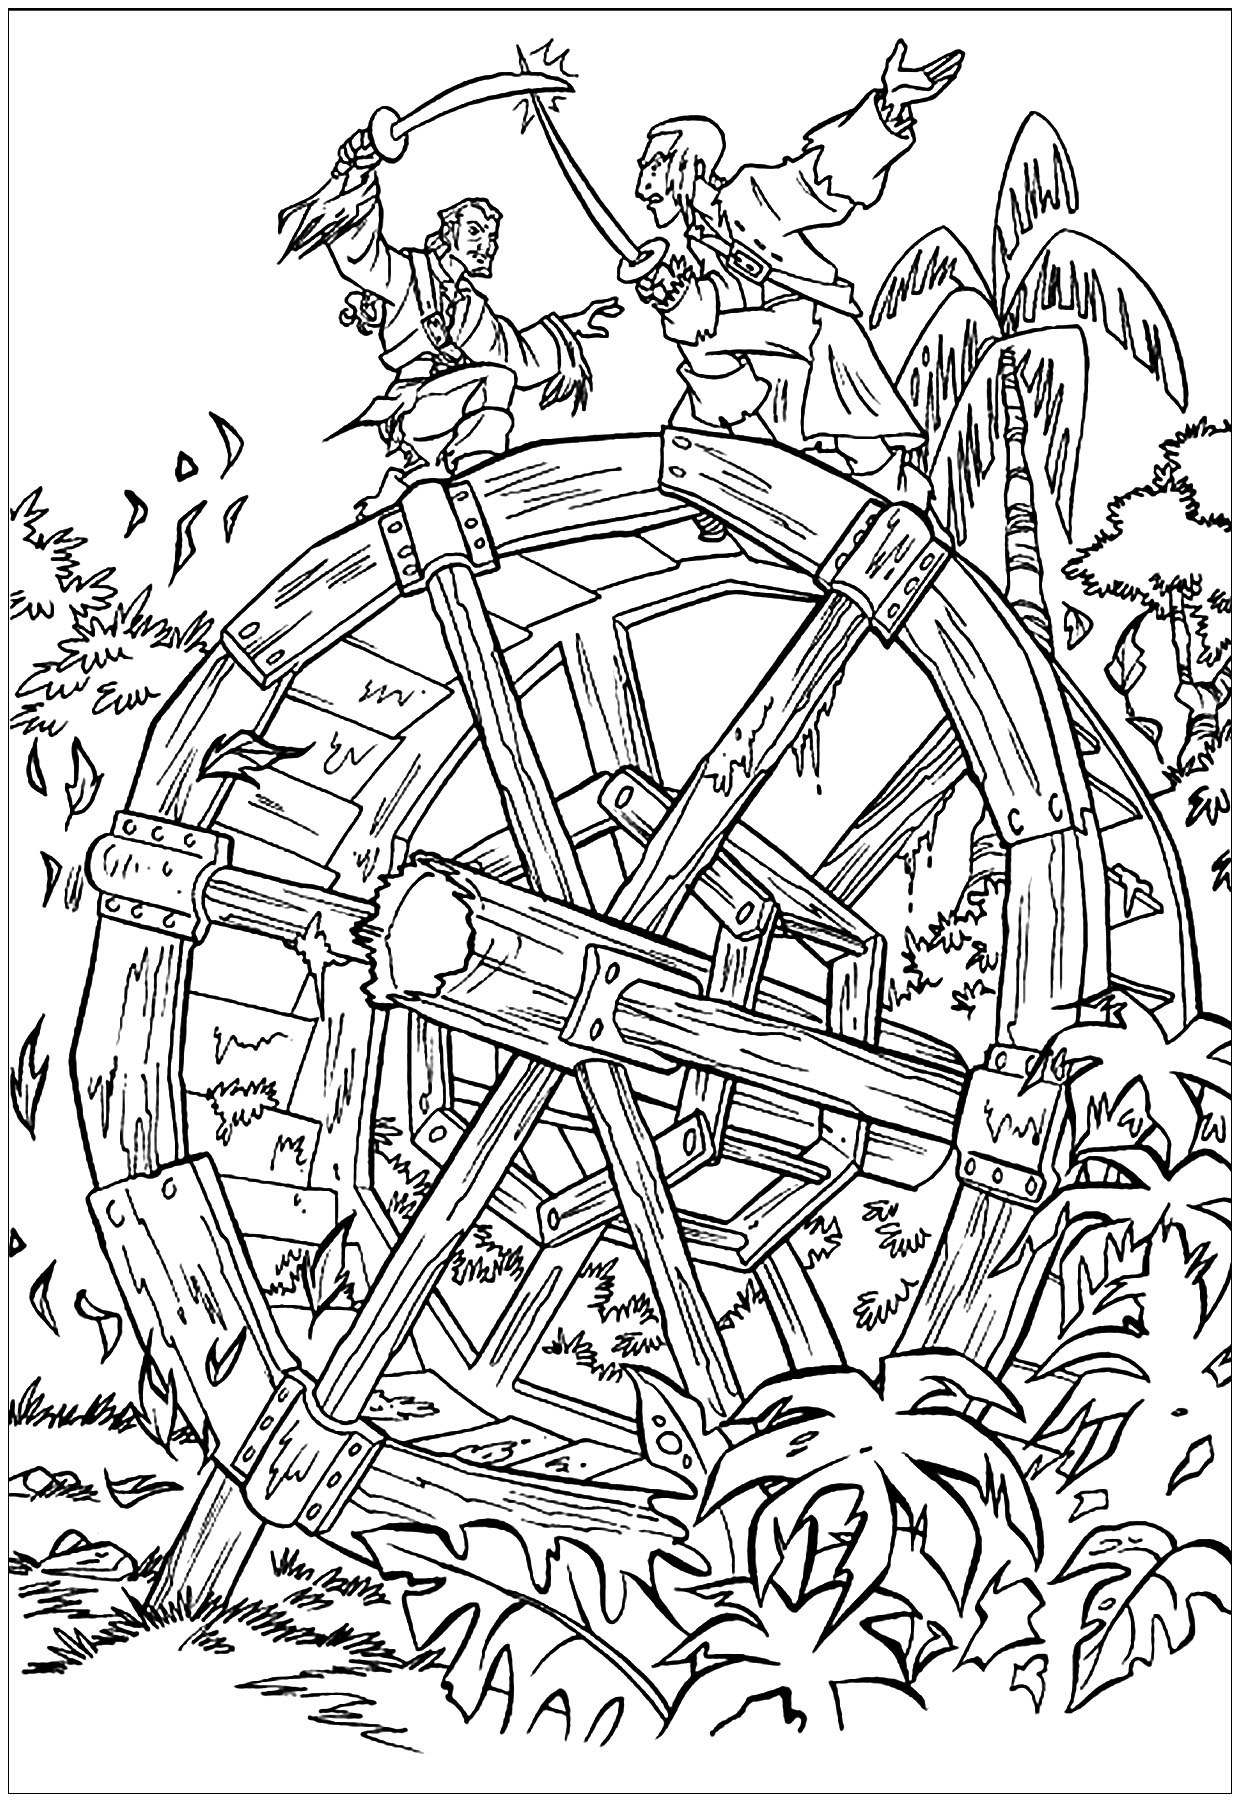 pirates coloring pages pirate coloring pages to download and print for free pages coloring pirates 1 1